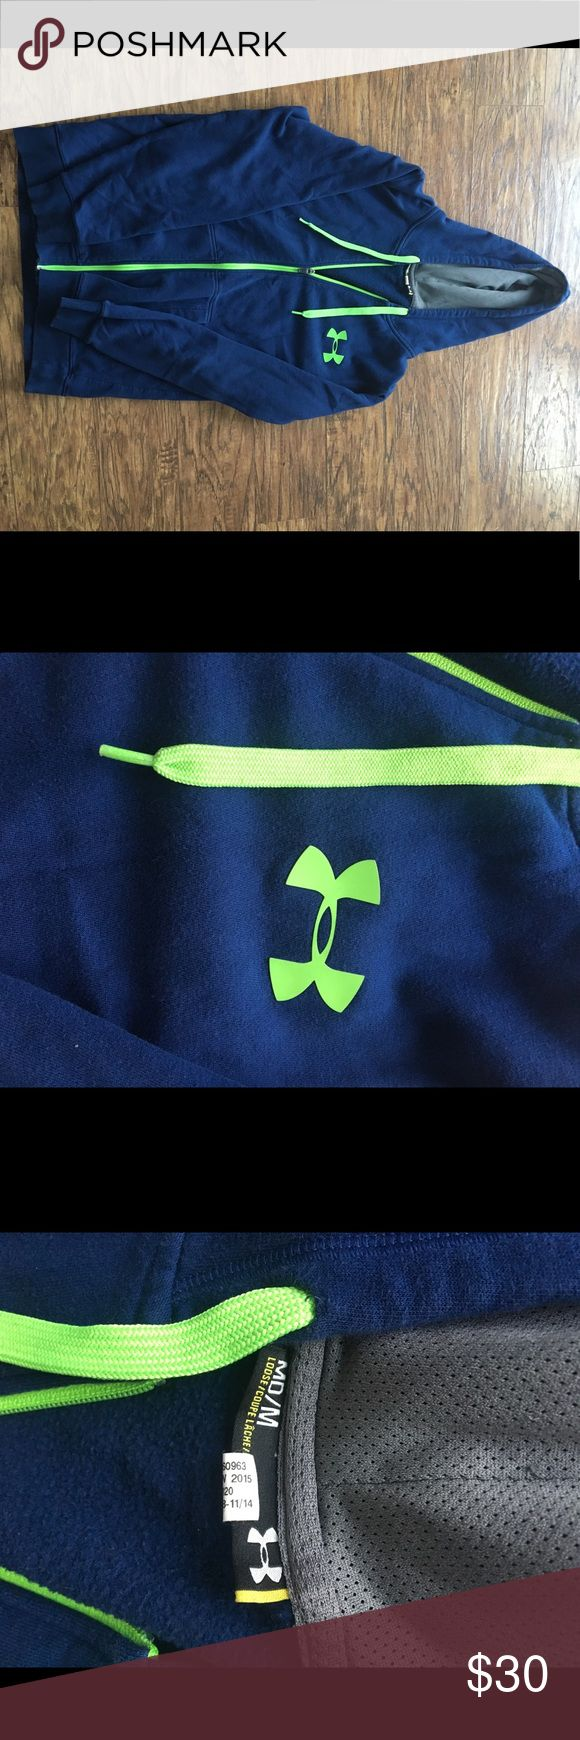 Men's Under Armour Zip Up Men's bright navy blue Under Armour zip up hoodie. Men's size medium. Bright green strings and logo. Super good quality. Good condition. Make offer!! Under Armour Shirts Sweatshirts & Hoodies